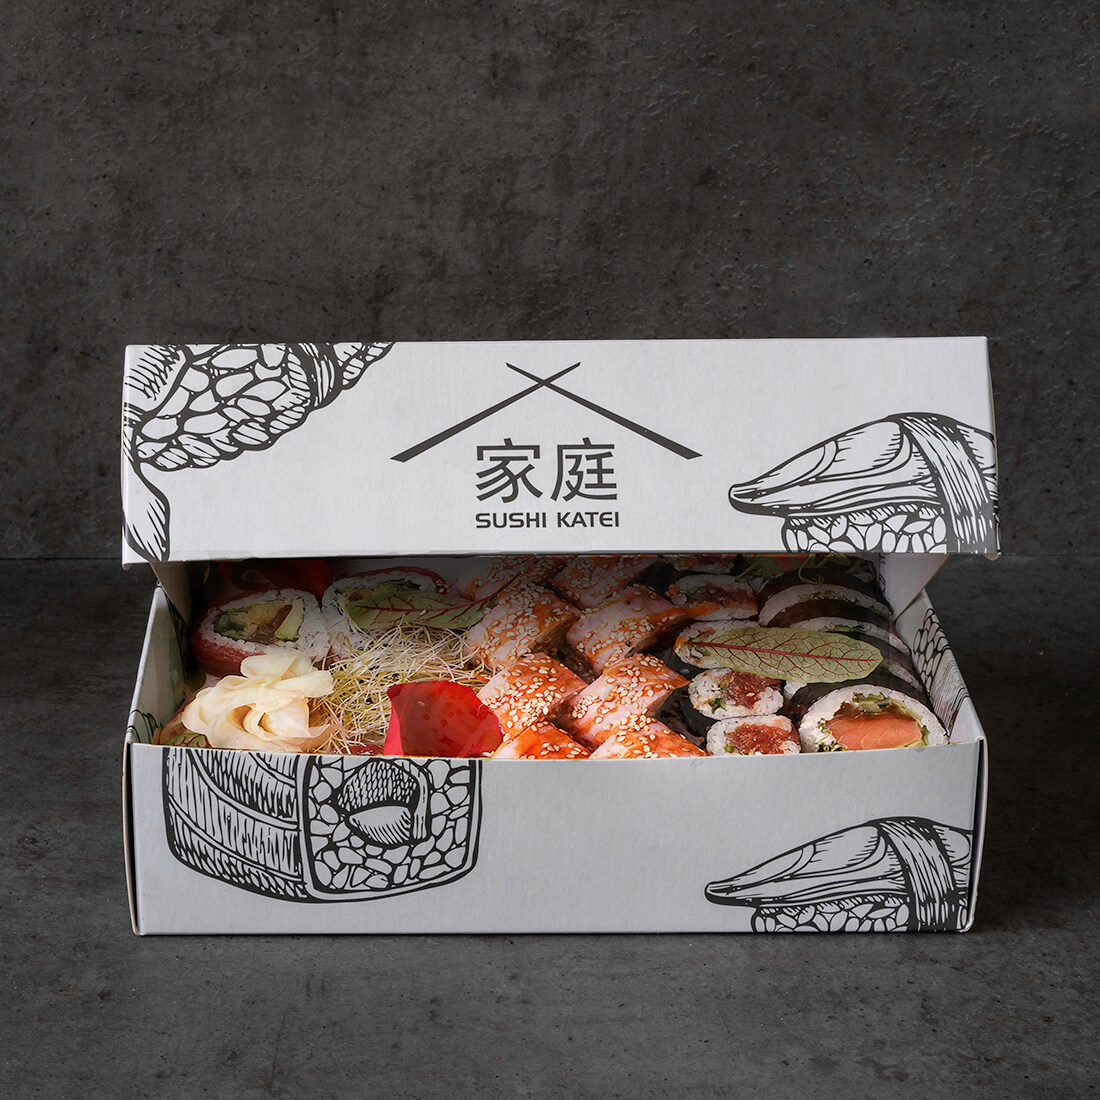 Paper sushi boxes with an original print for Sushi Katei restaurants effectively set them apart from the competition